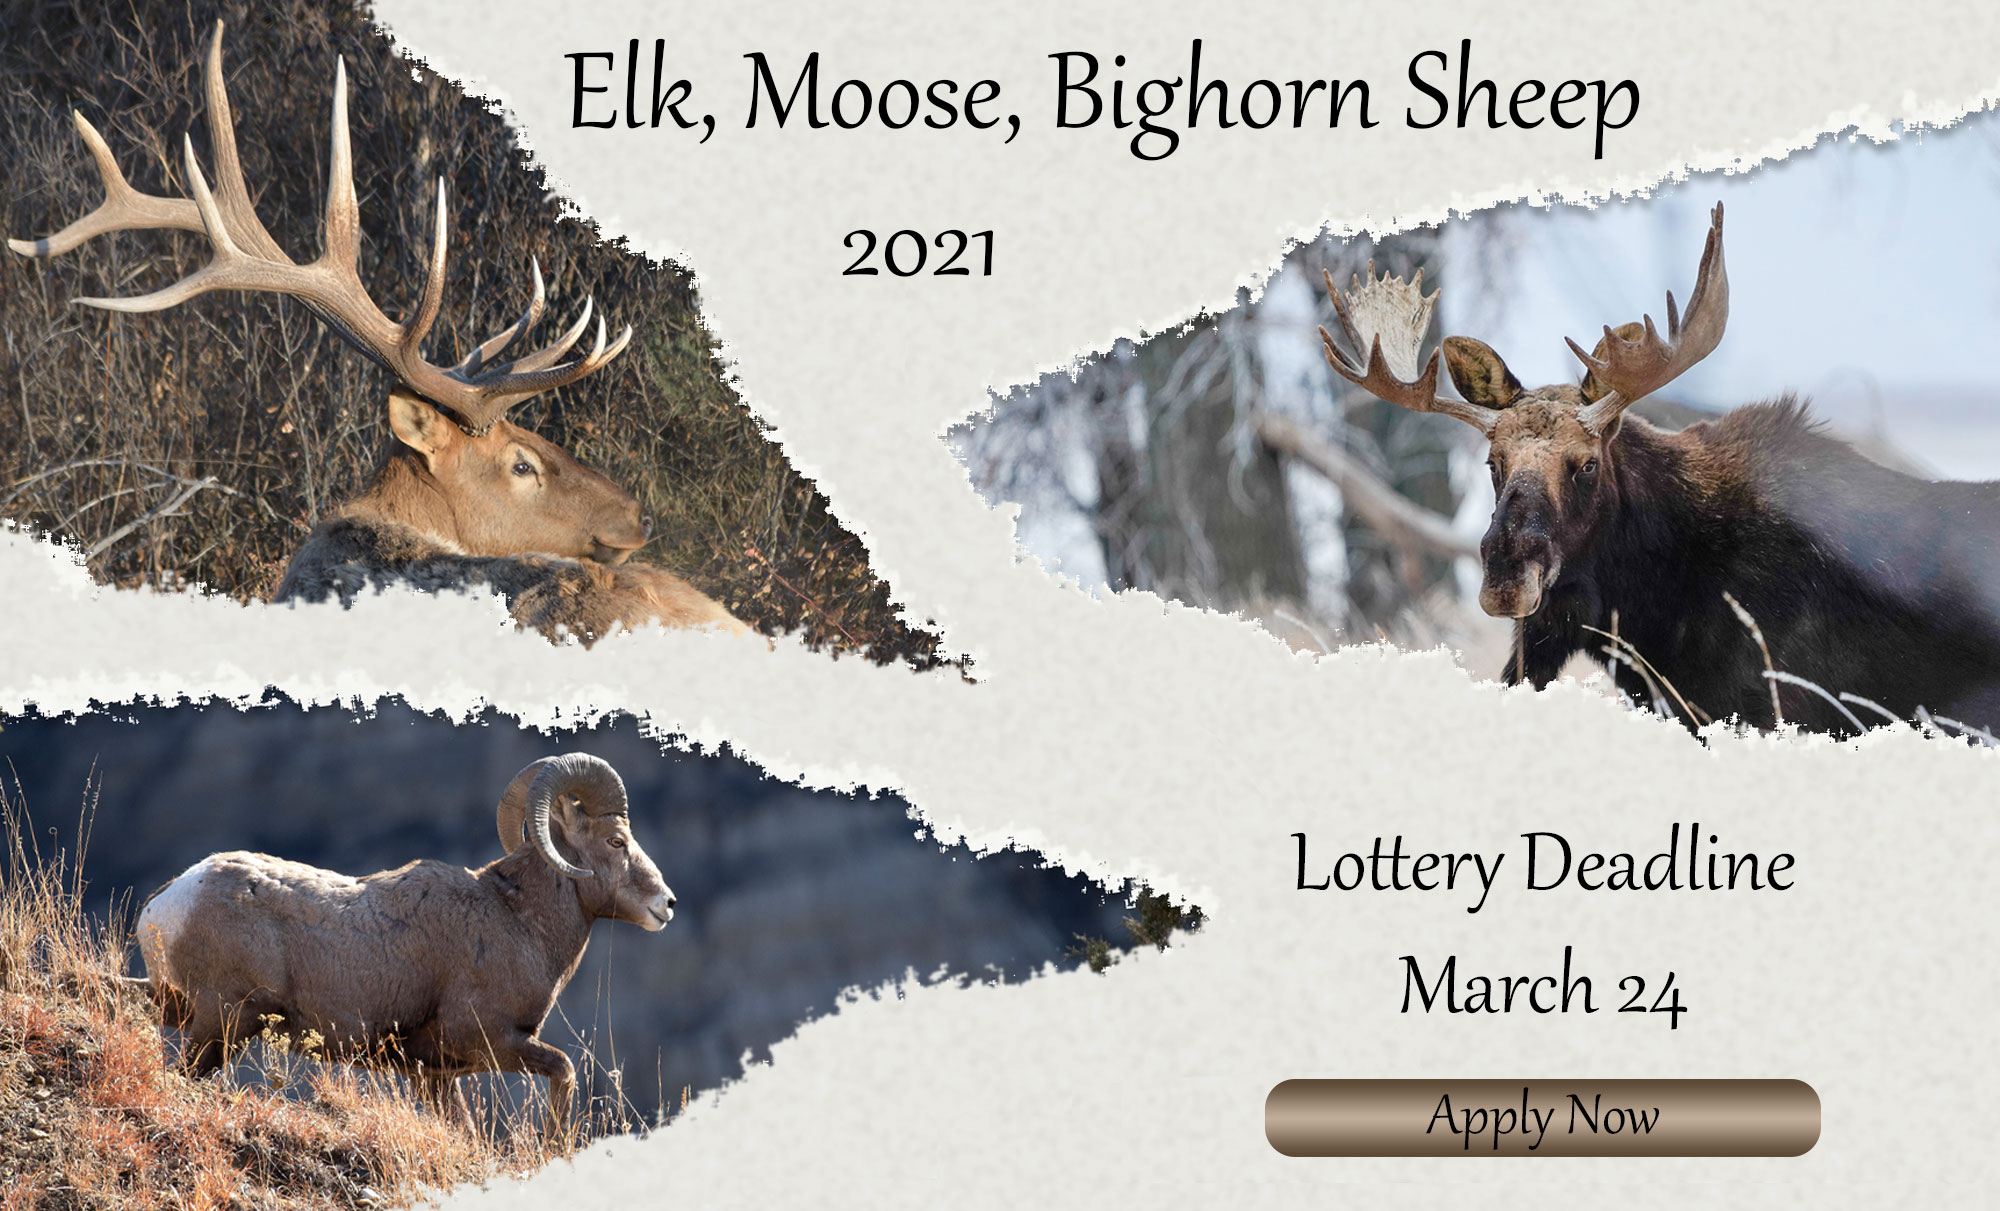 Elk, moose, sheep with deadline text overlayed